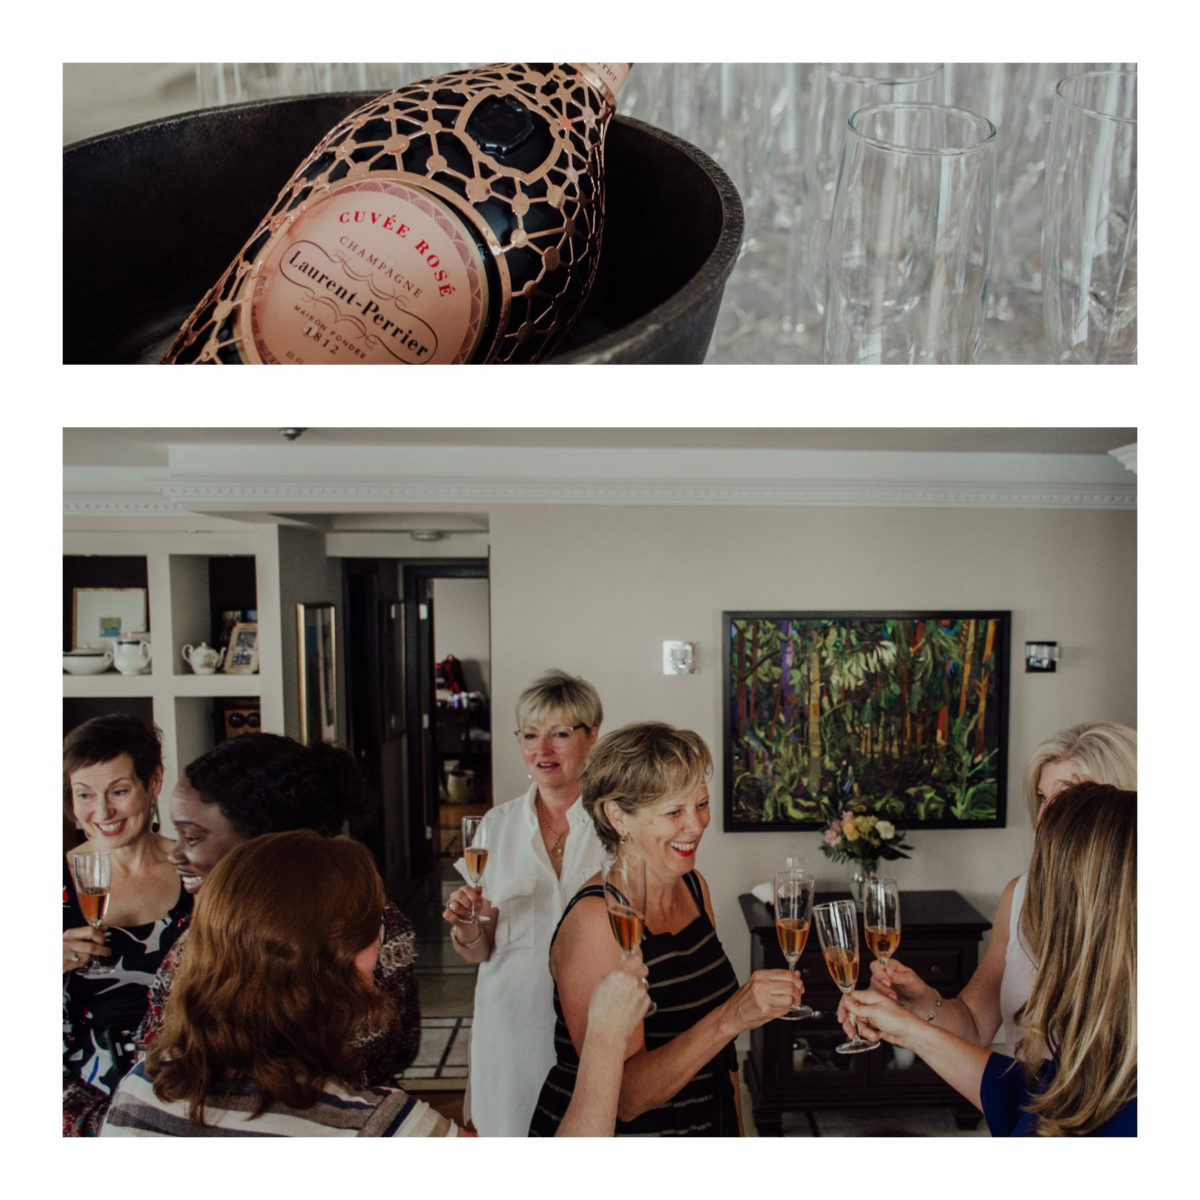 Les Dames d'Escoffier – Ontario Celebrate with Laurent-Perrier Cuvee Rose Constellation